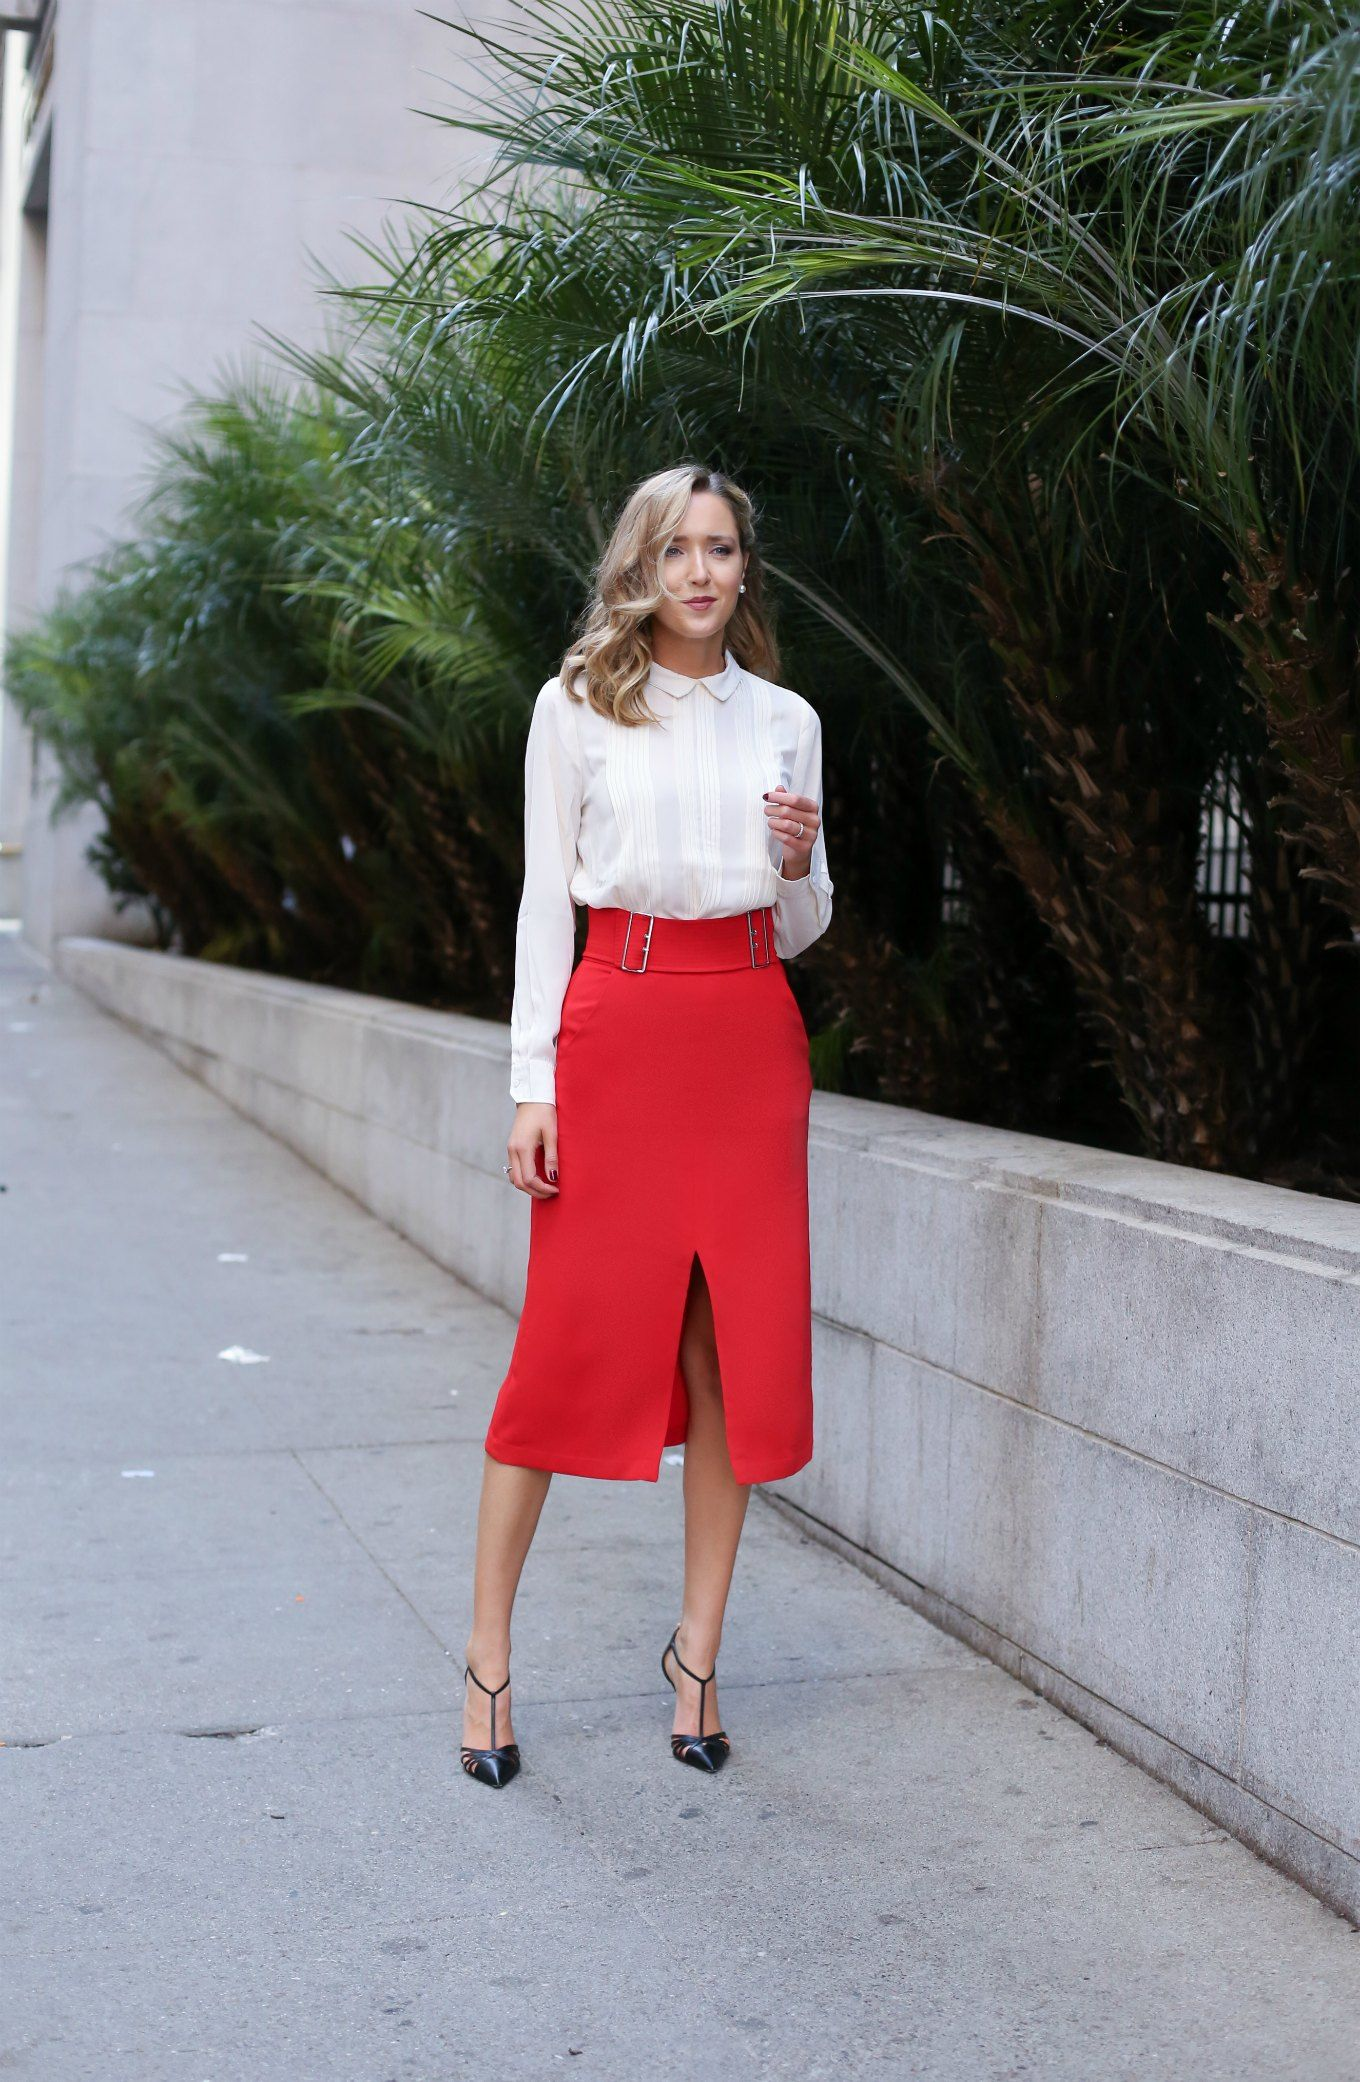 Red Midi Skirt, Collared Blouse (MEMORANDUM) | Pump, Skirts and ...